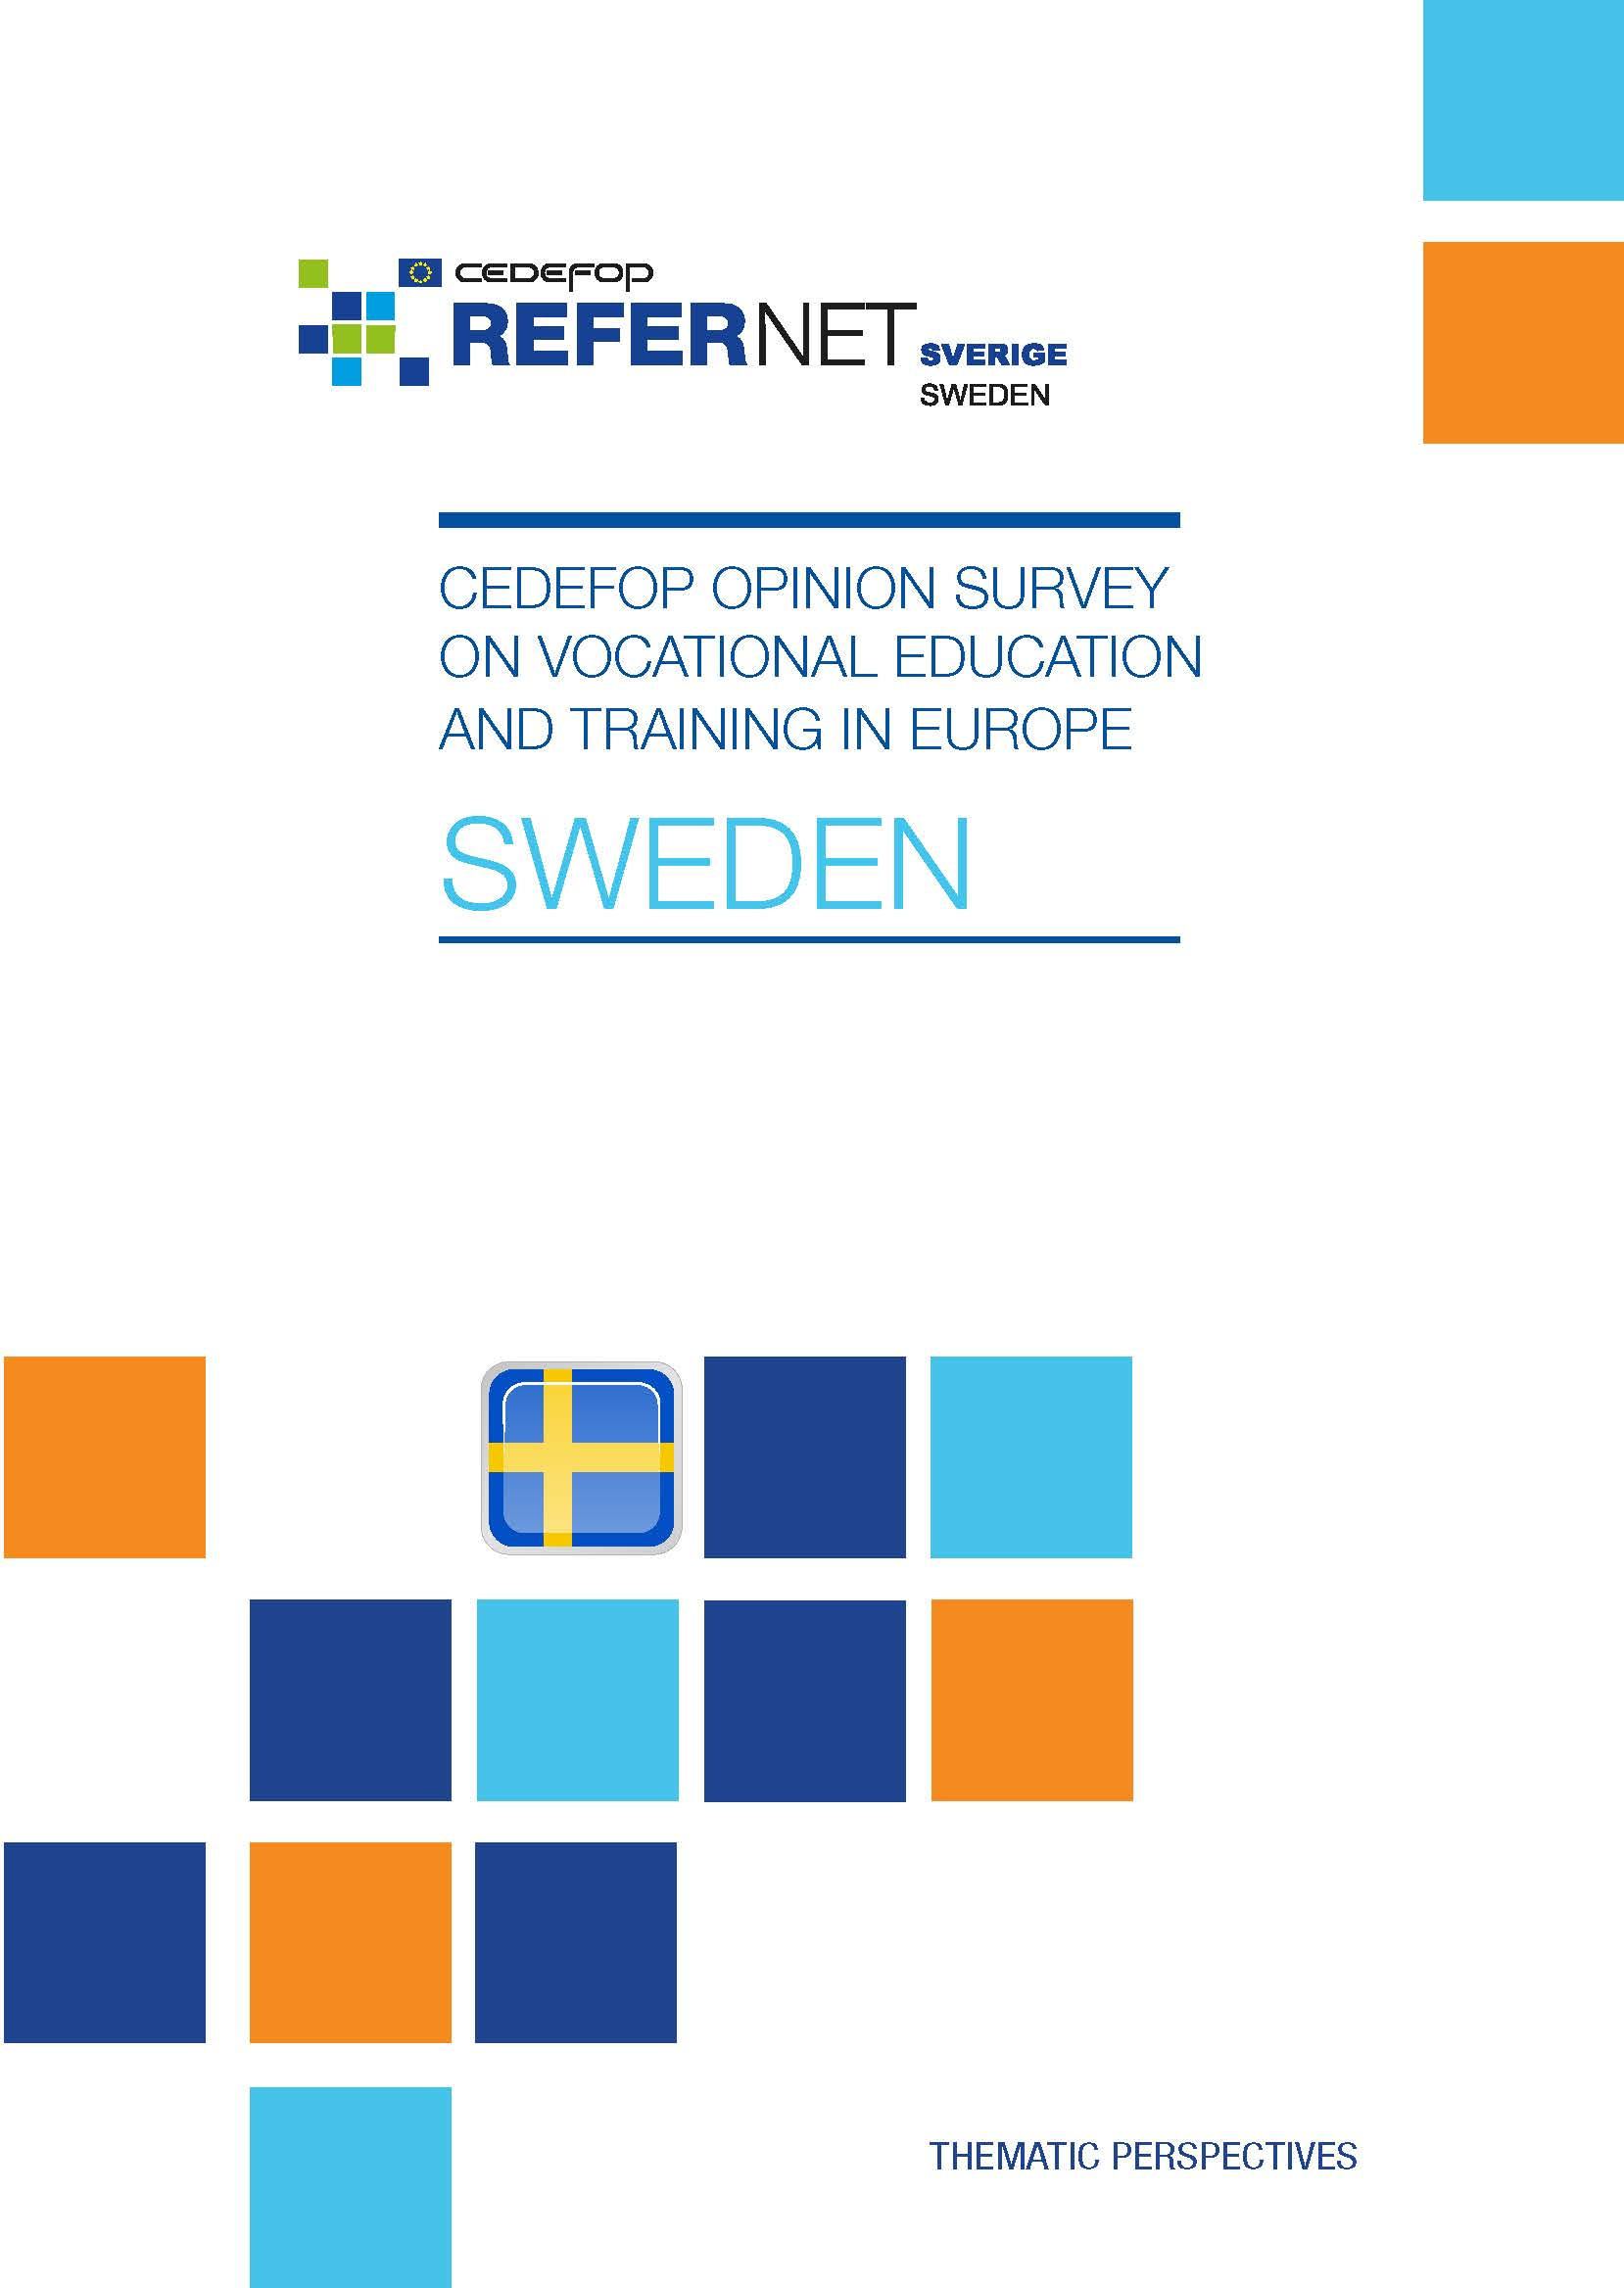 Cedefop public opinion survey on vocational education and training in Europe: Sweden